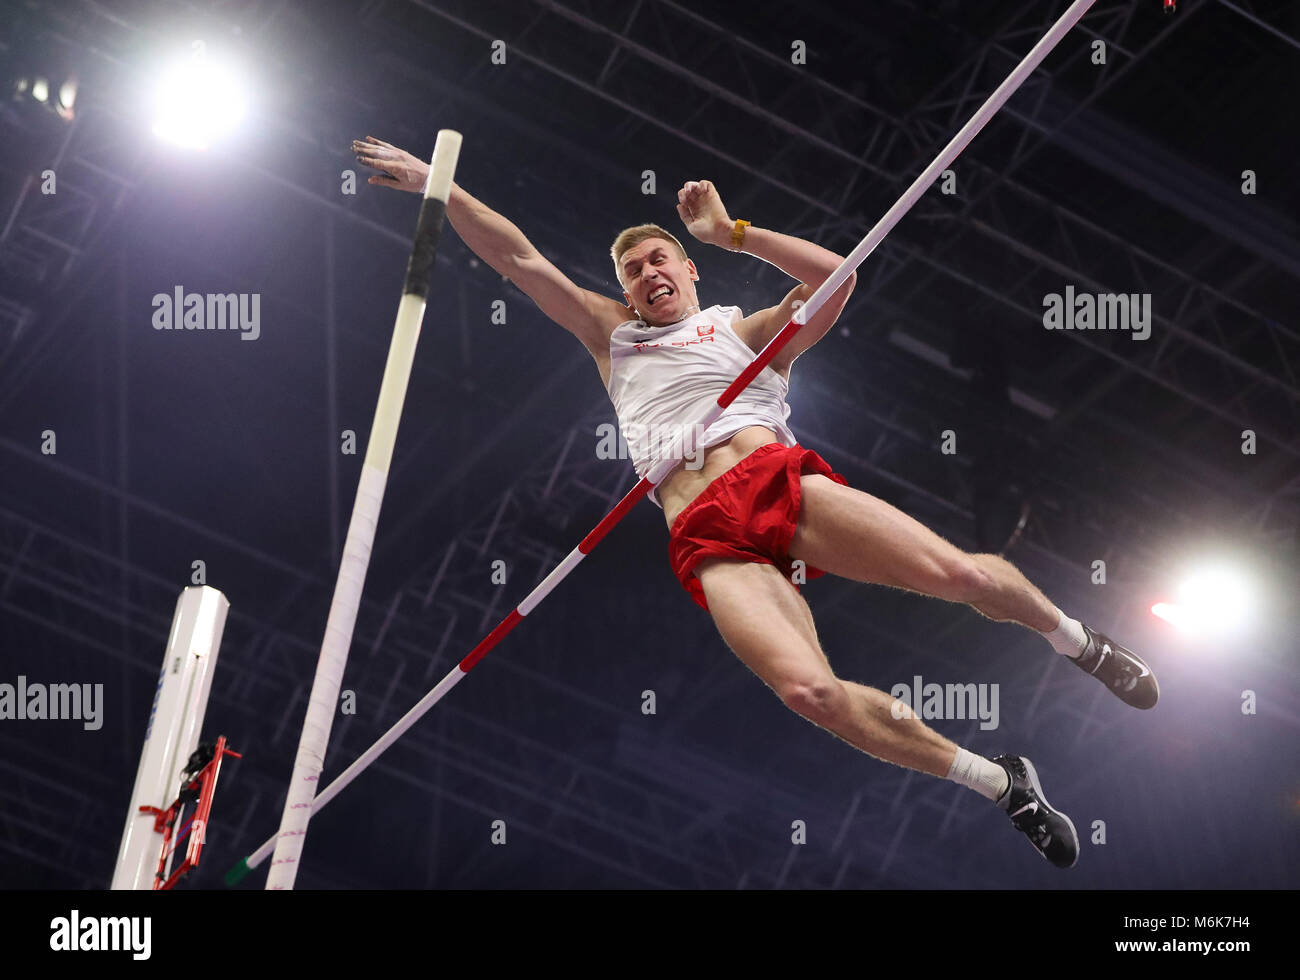 Birmingham. 4th Mar, 2018. Piotr Lisek of Poland competes during the men's pole vault final of the IAAF World - Stock Image